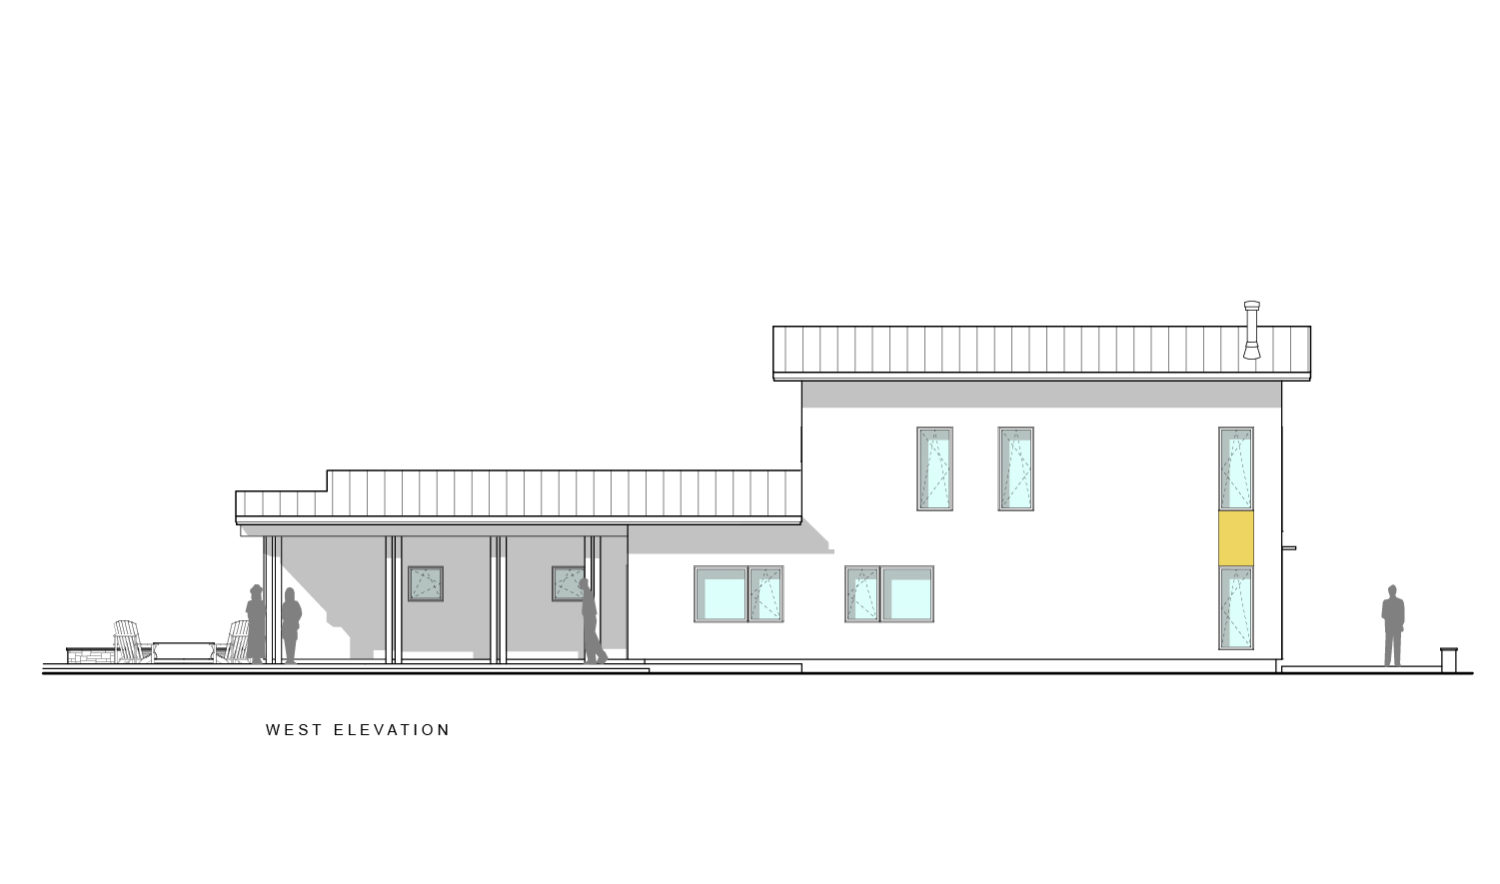 wylie-woods-passive-house-west-elevation